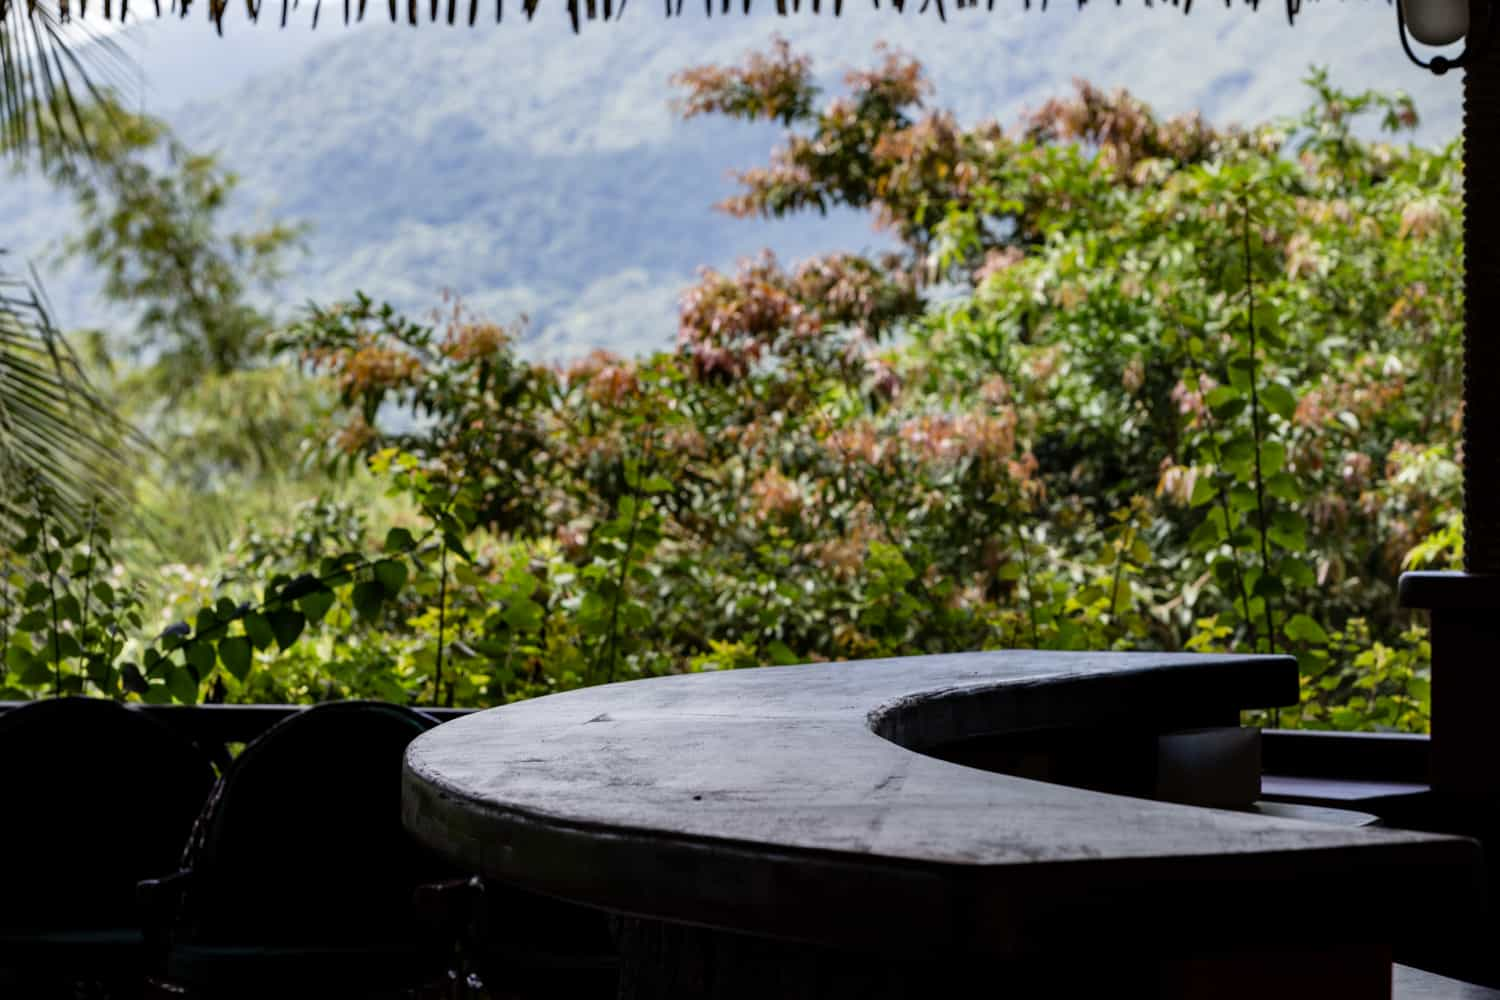 The bar under the El Ranchito hut that has an amazing view of the Arenal Volcano.